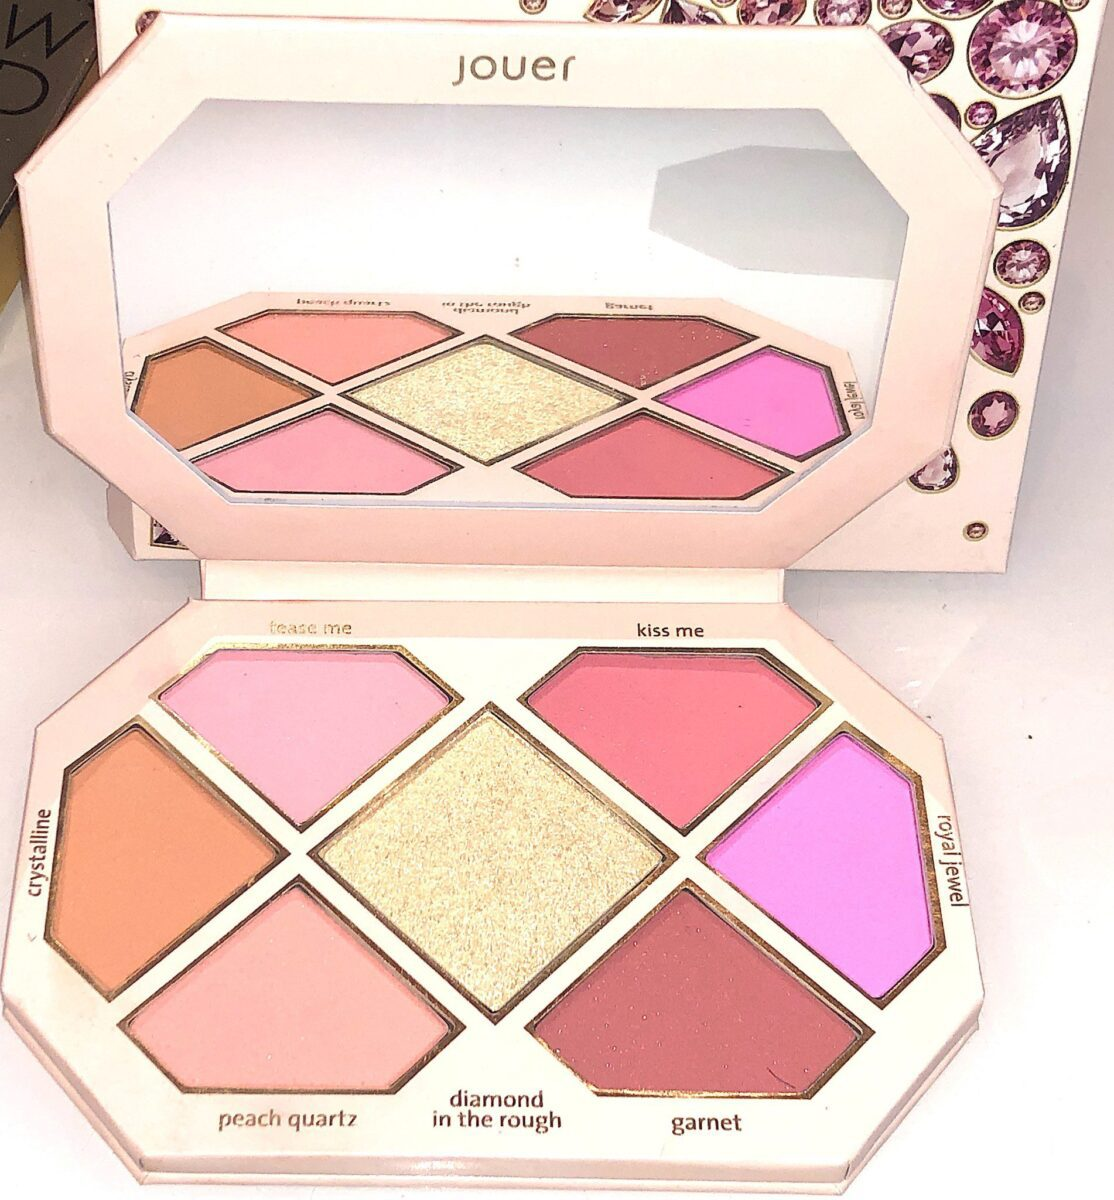 THE FOUR NEW SHADES IN THE JOUER ROSE CUT GEMS BLUSH PALETTE ARE CRYSTALLINE, GARNET, PEACH QUARTZ AND ROYAL JEWEL